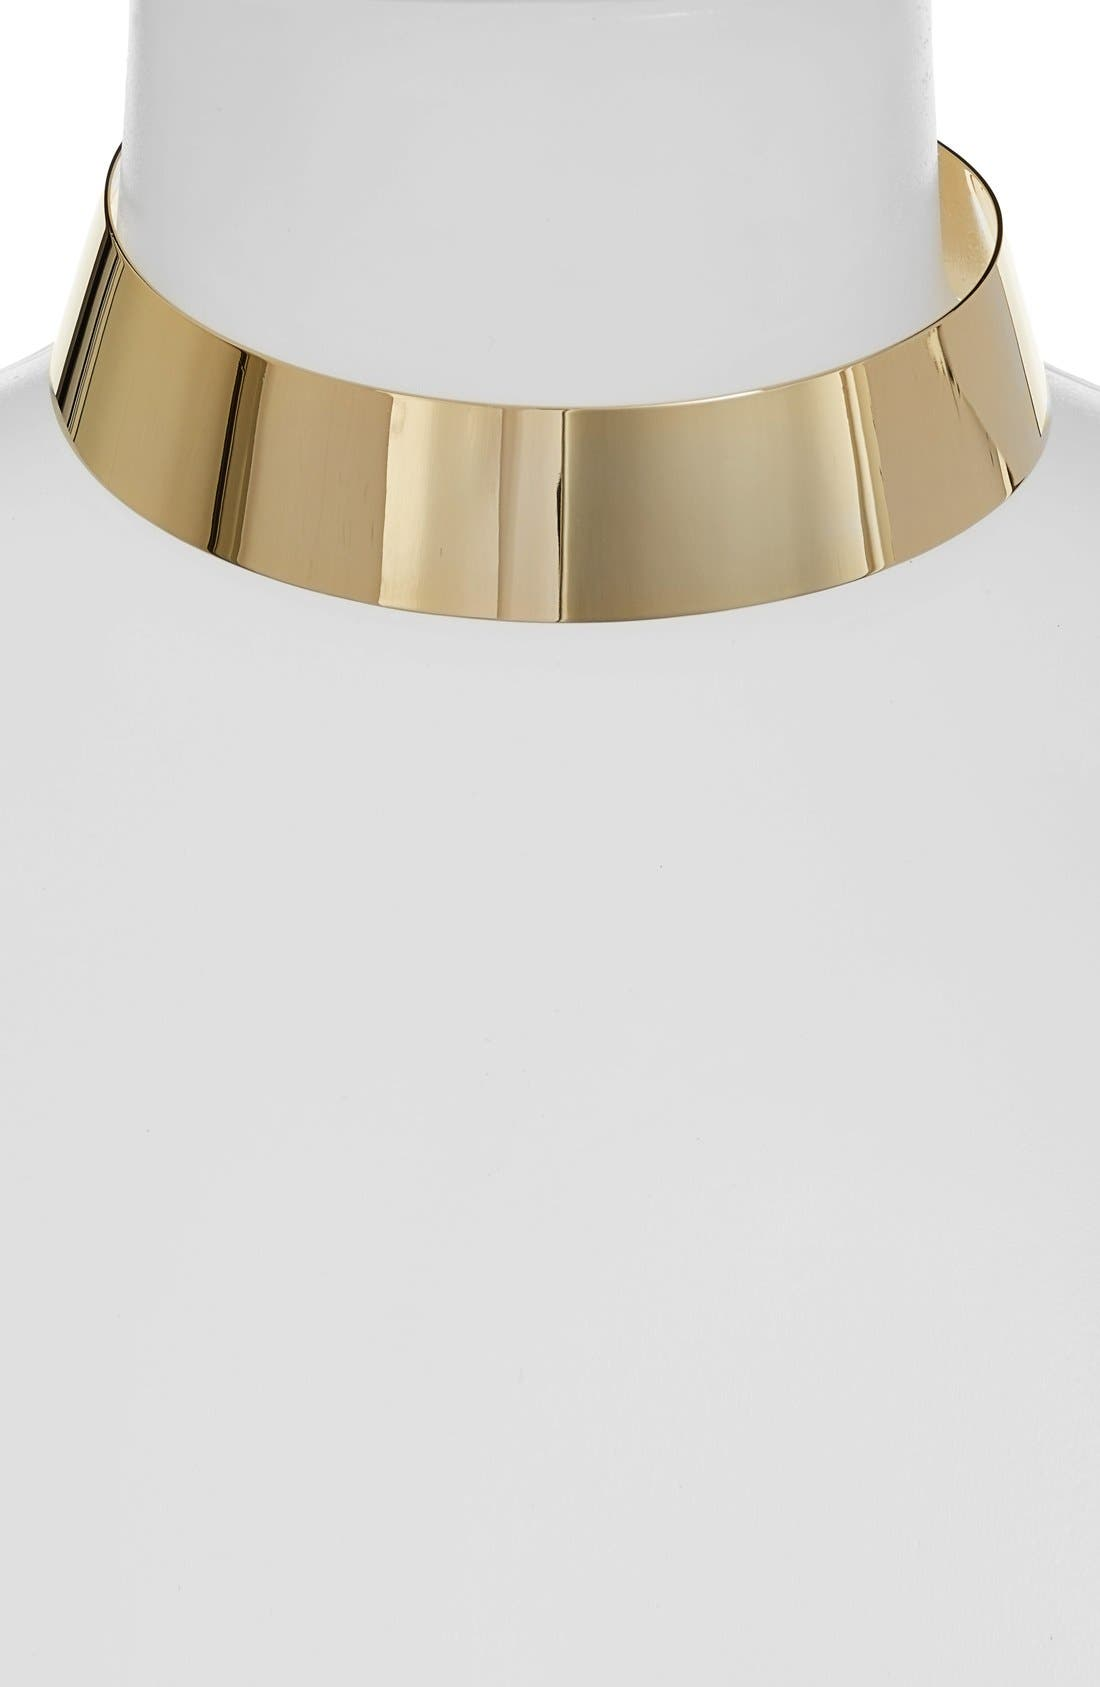 Alternate Image 1 Selected - Nordstrom Wide Metal Choker